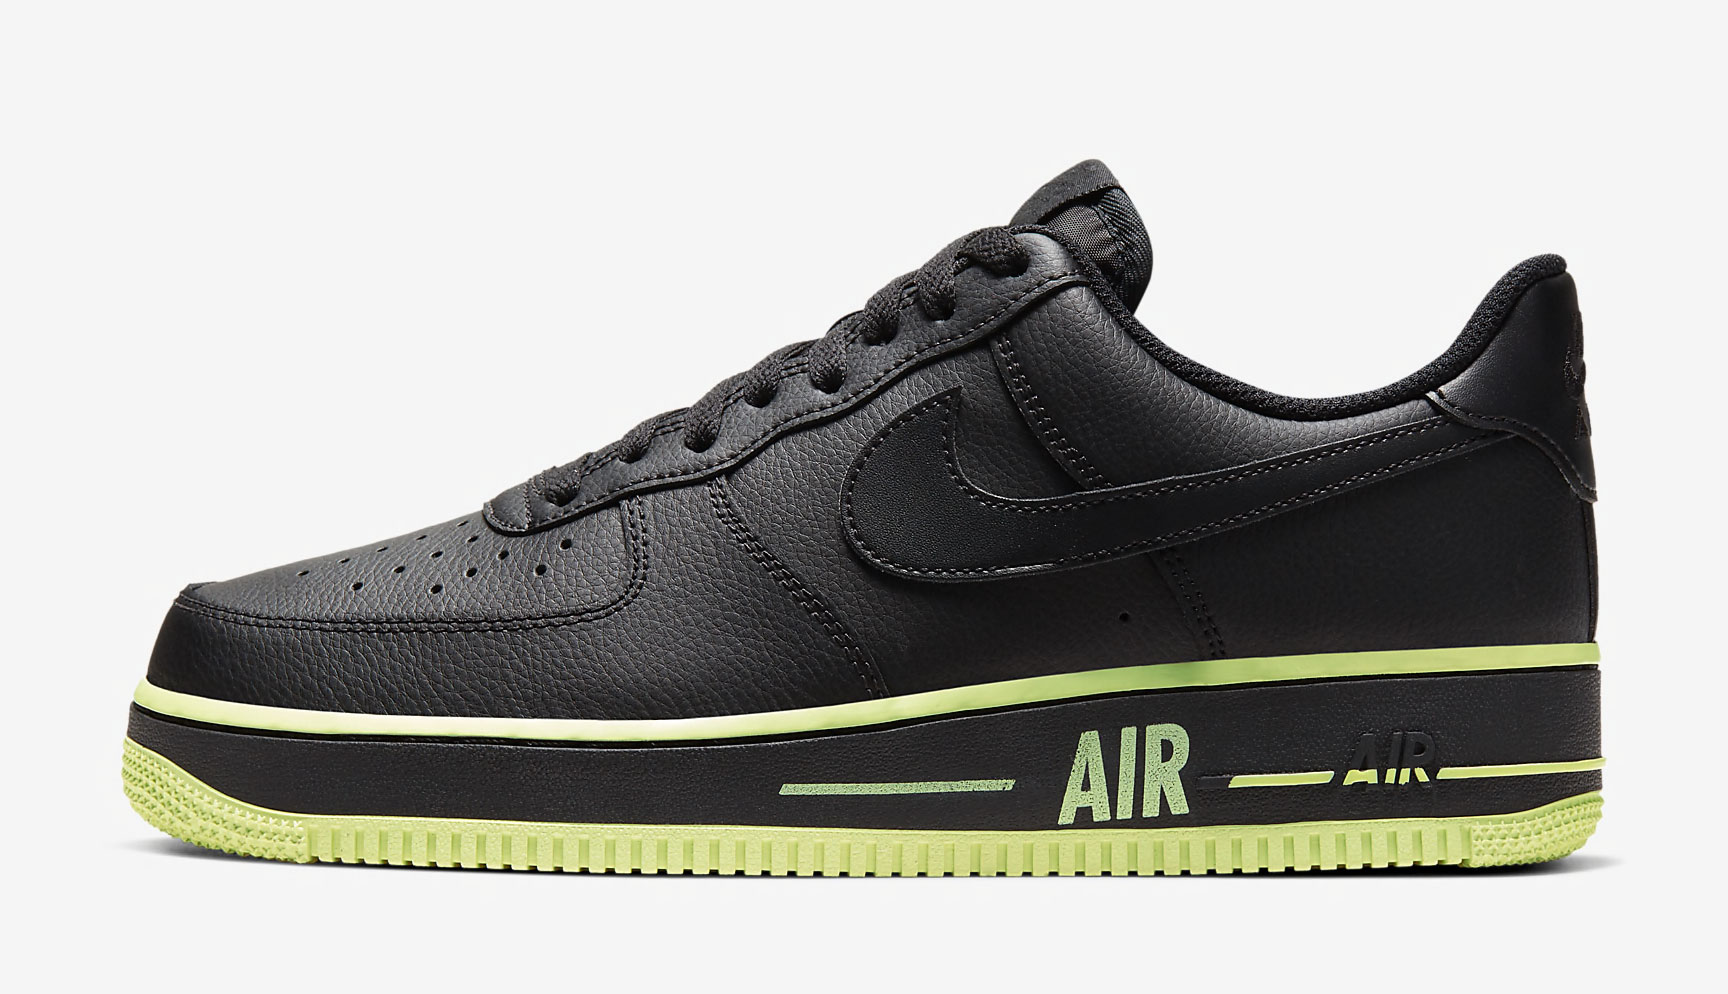 nike-air-force-1-low-lv8-3-black-volt-release-date